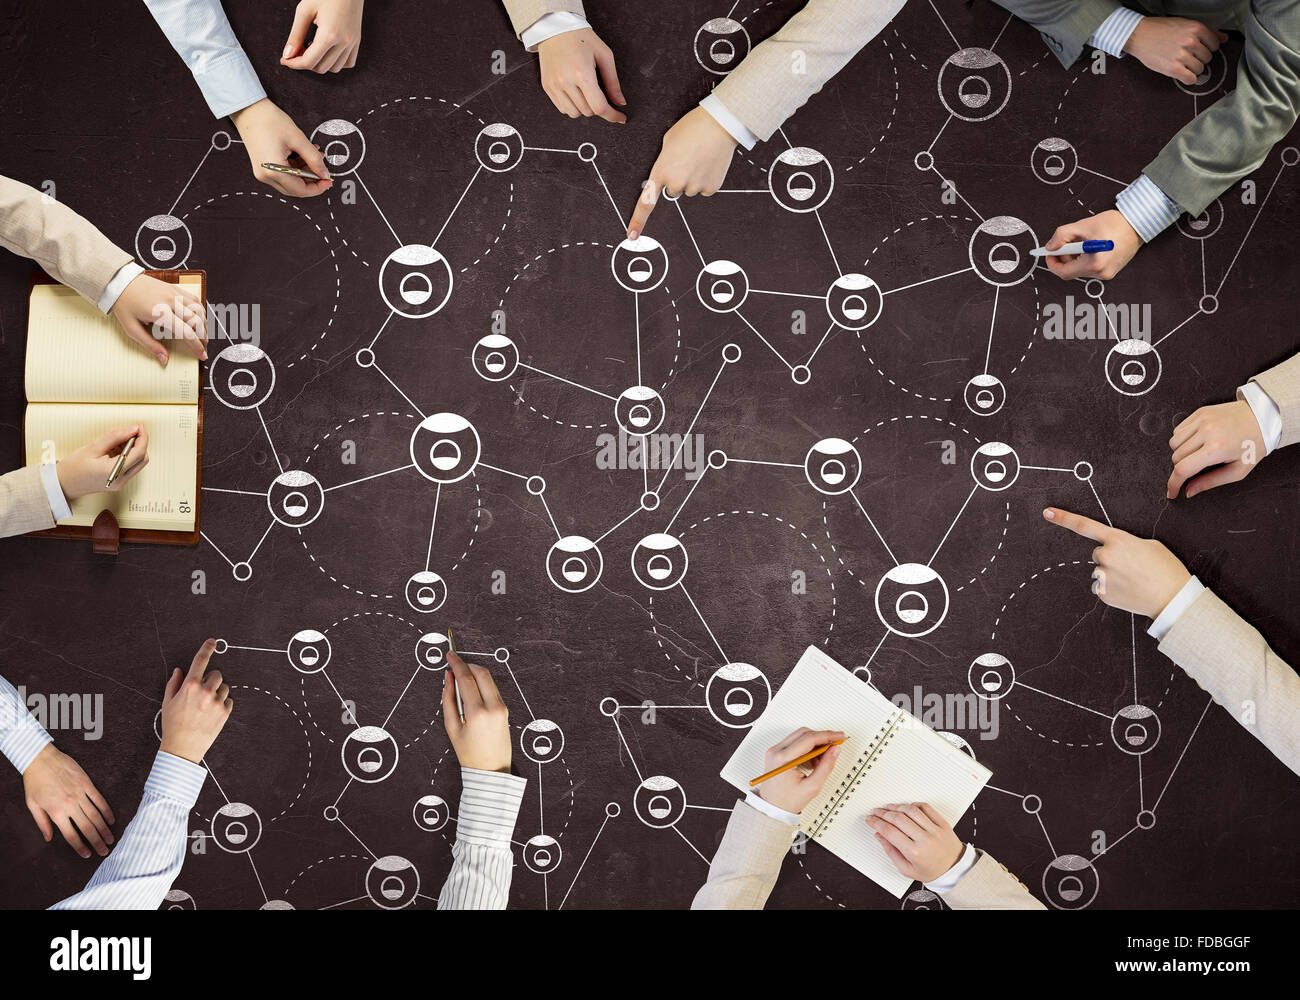 top view of people hands drawing networking strategy stock photo stock photo top view of people hands drawing networking strategy